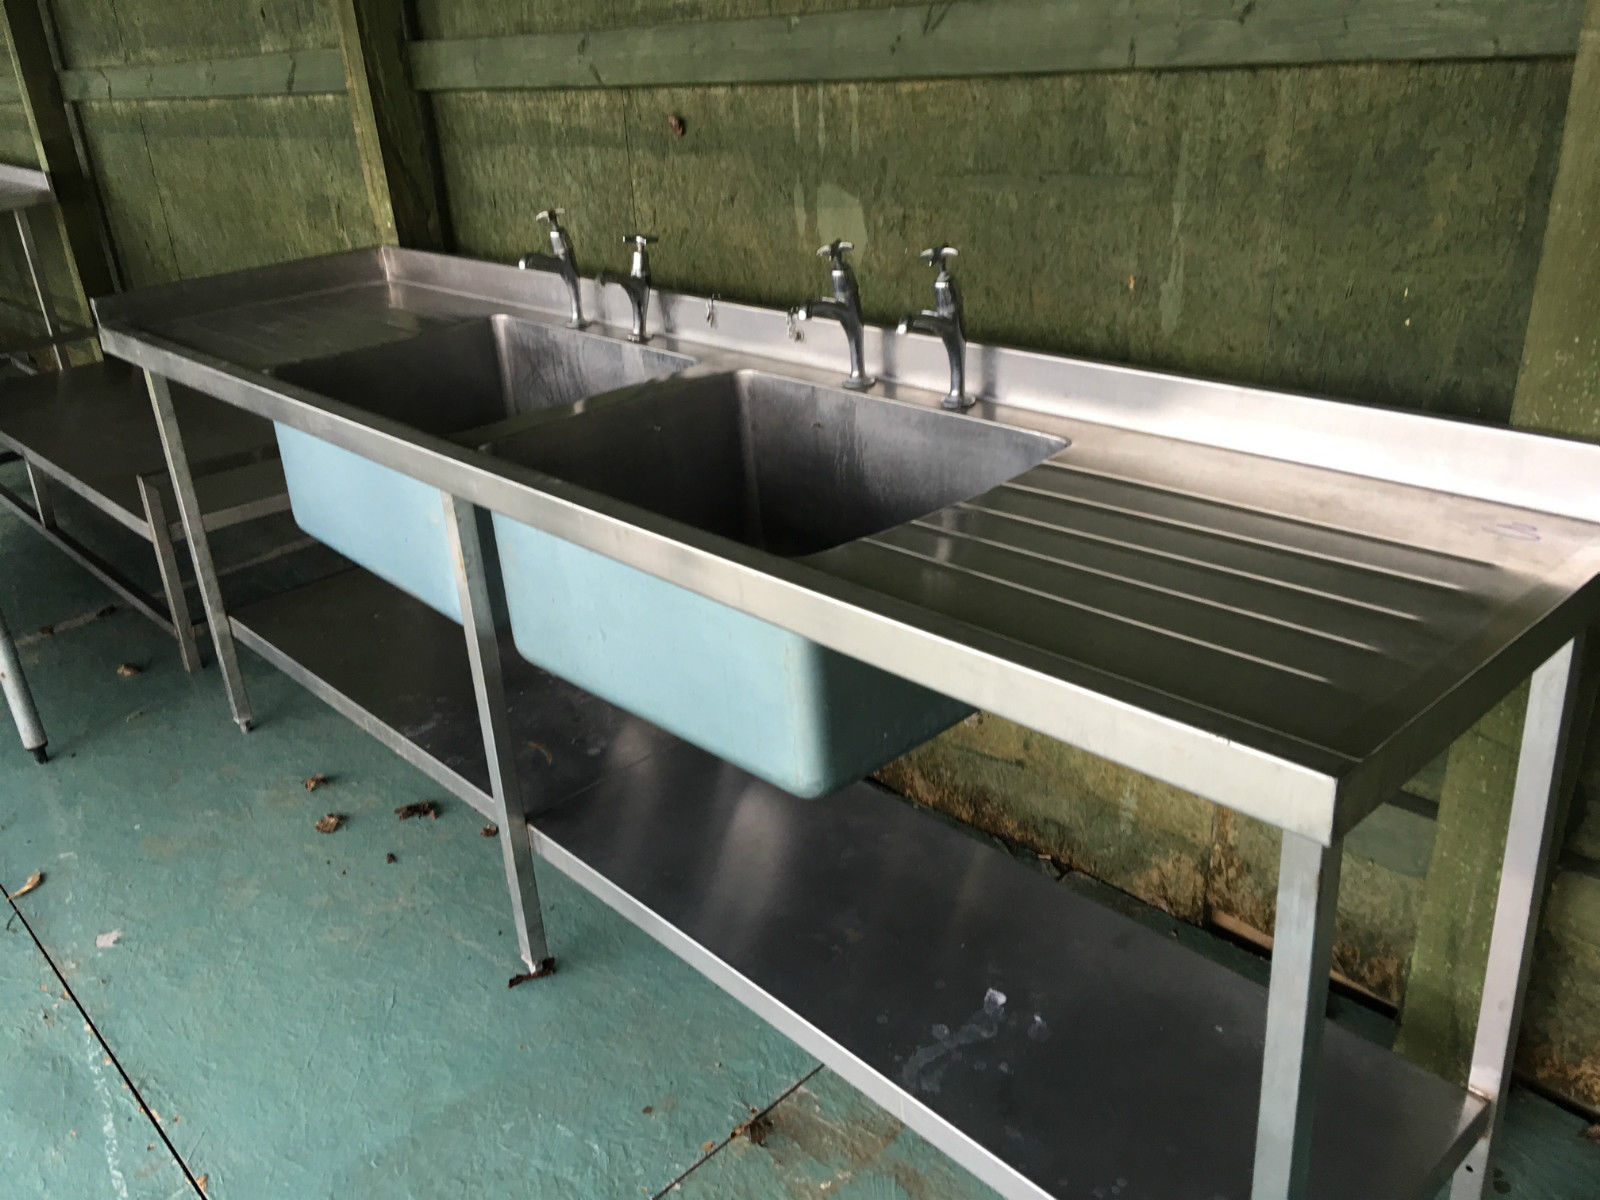 Stainless Steel Tables Sinks Used Rational Catering